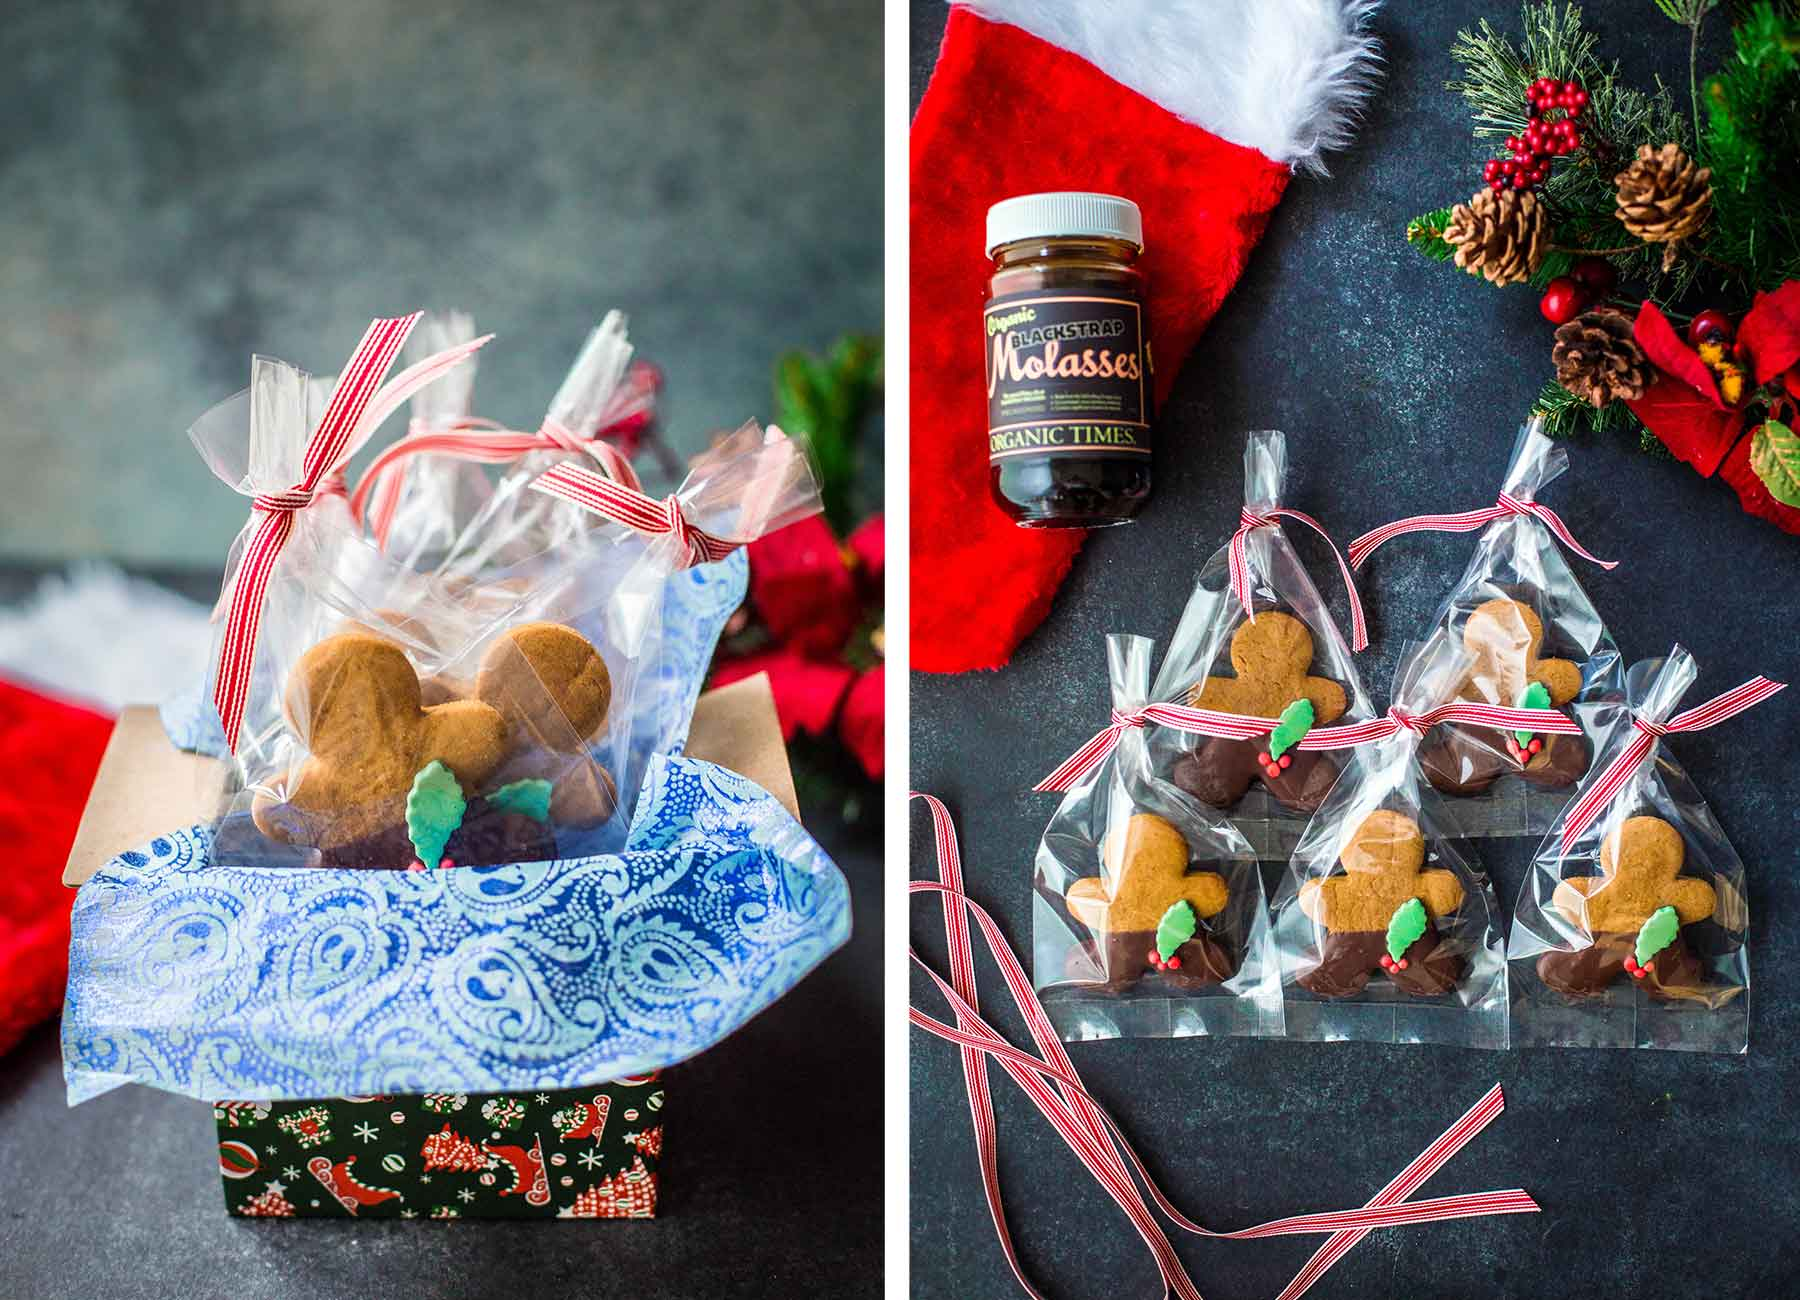 Gift wrapped Gingerbread Men cookies next to Orgnaic Times molasses and Christmas decoration